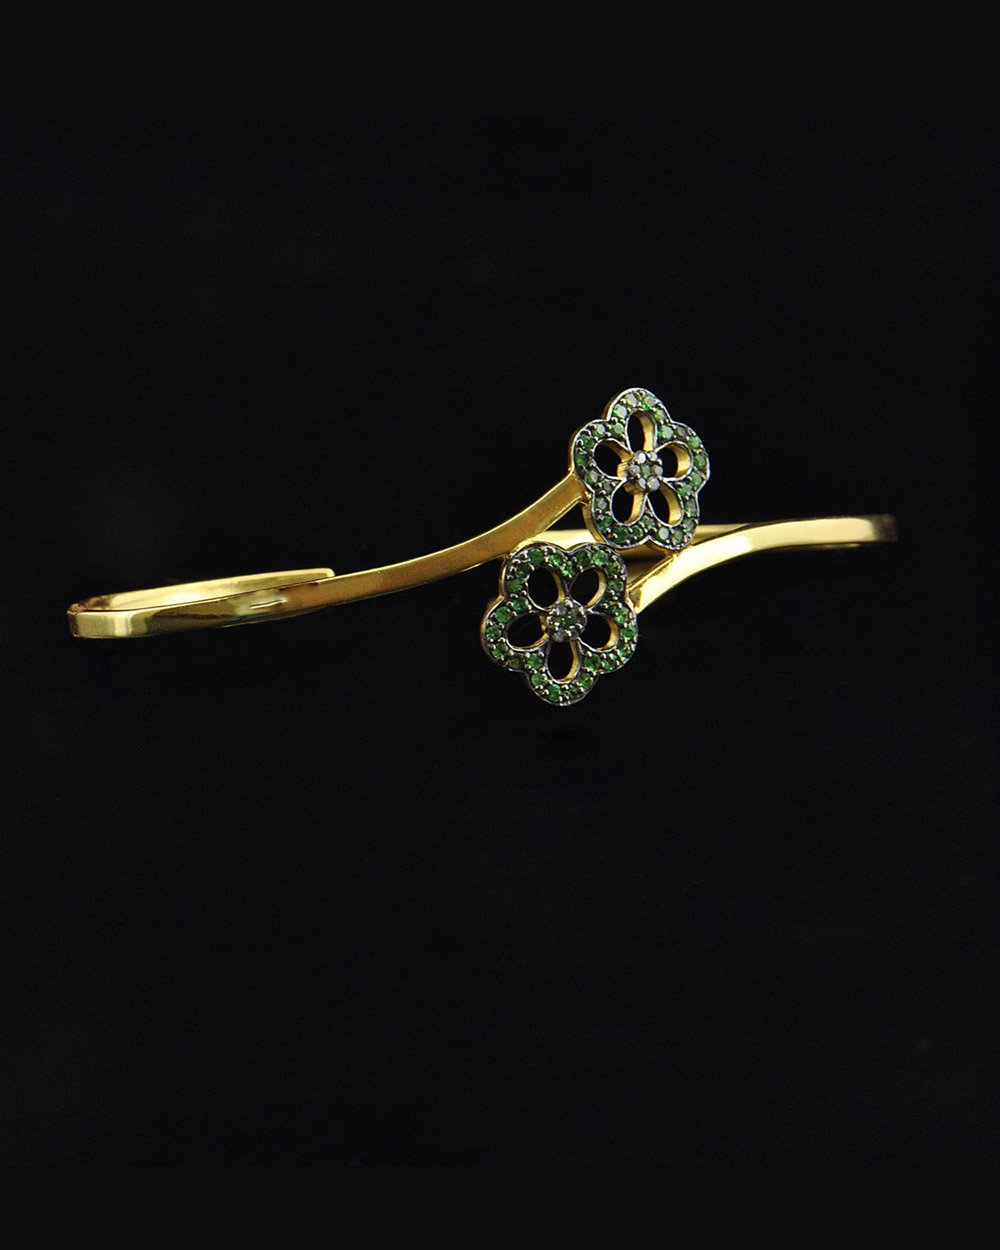 Diamond and Tsavorite Palm Cuff Hand Bracelet